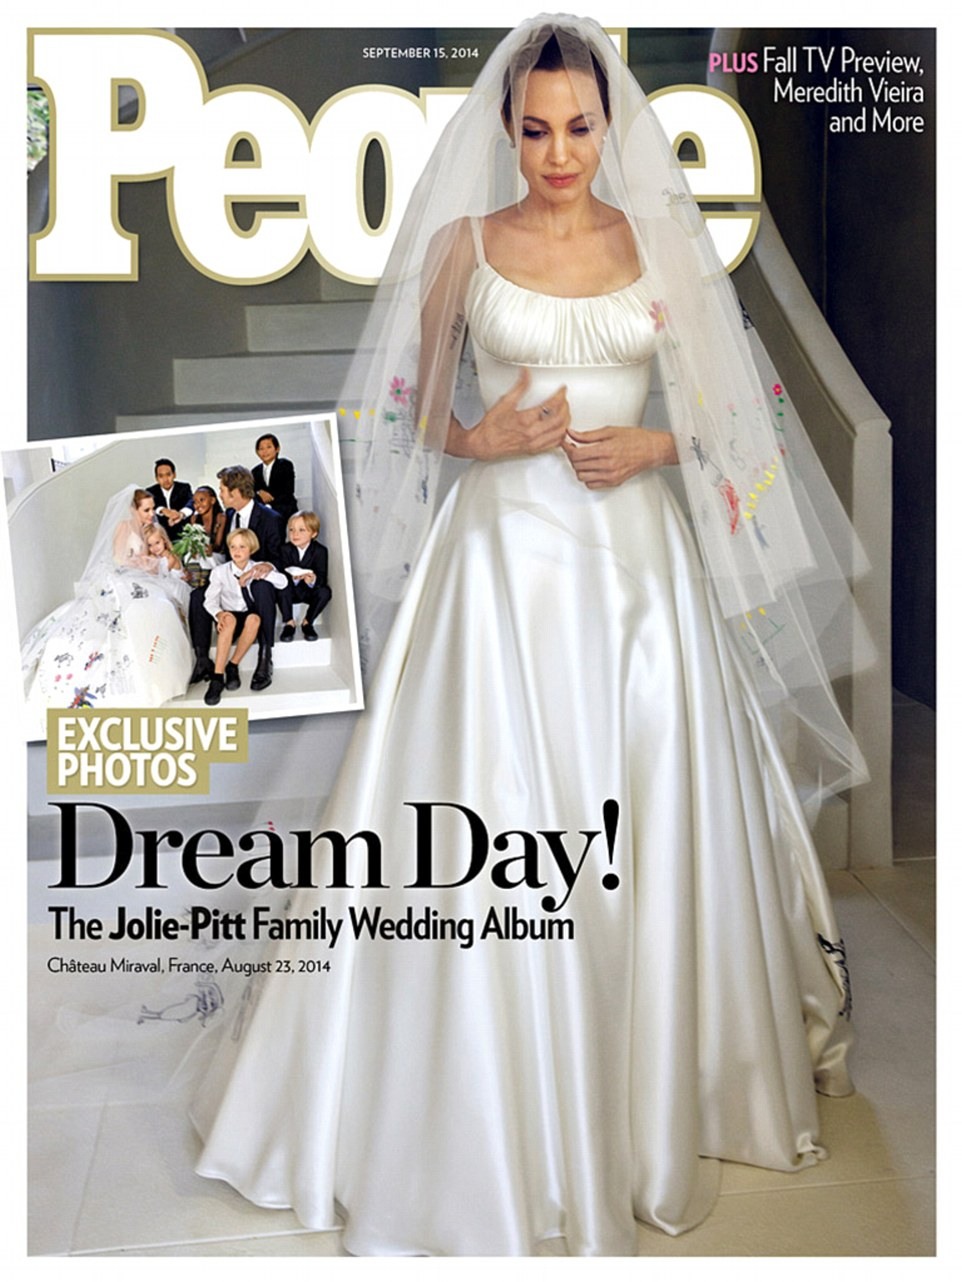 They do: Pitt and Jolie's wedding ceremony featured only their six children, and Jolie wore a custom Versace dress which featured drawings done by her sons and daughters